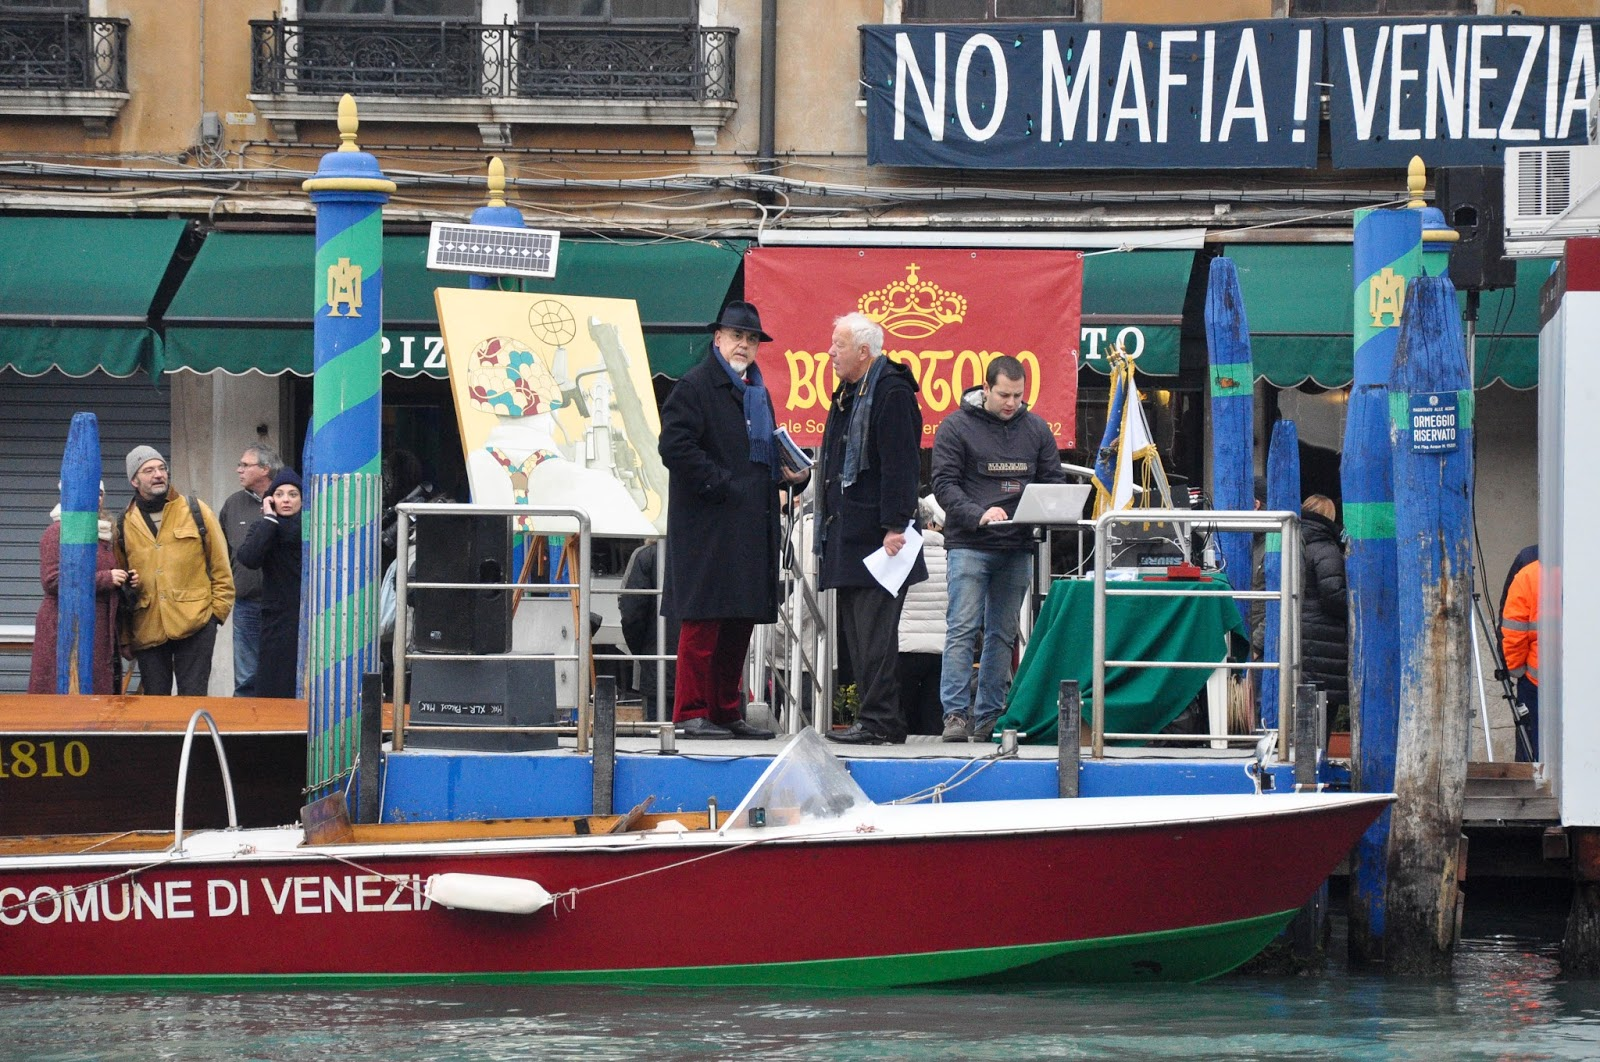 The platform, Befana race, Venice, Italy